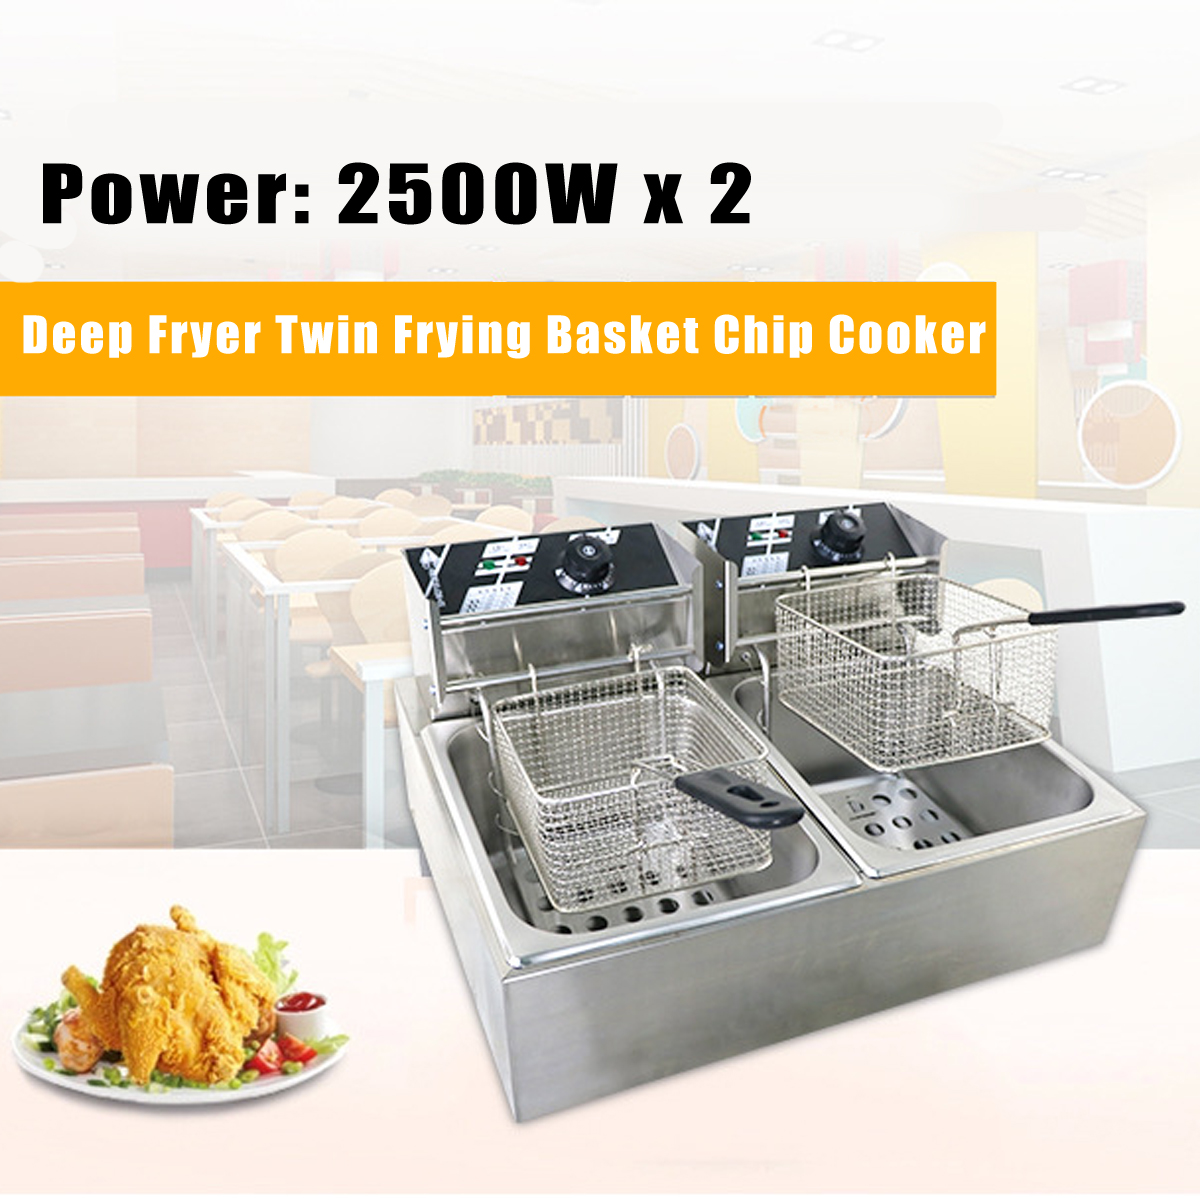 220V Deep Fryer Twin Frying Basket Chip Cooker Chef Electric Commercial Electric Fryer Pan Kitchen Appliances